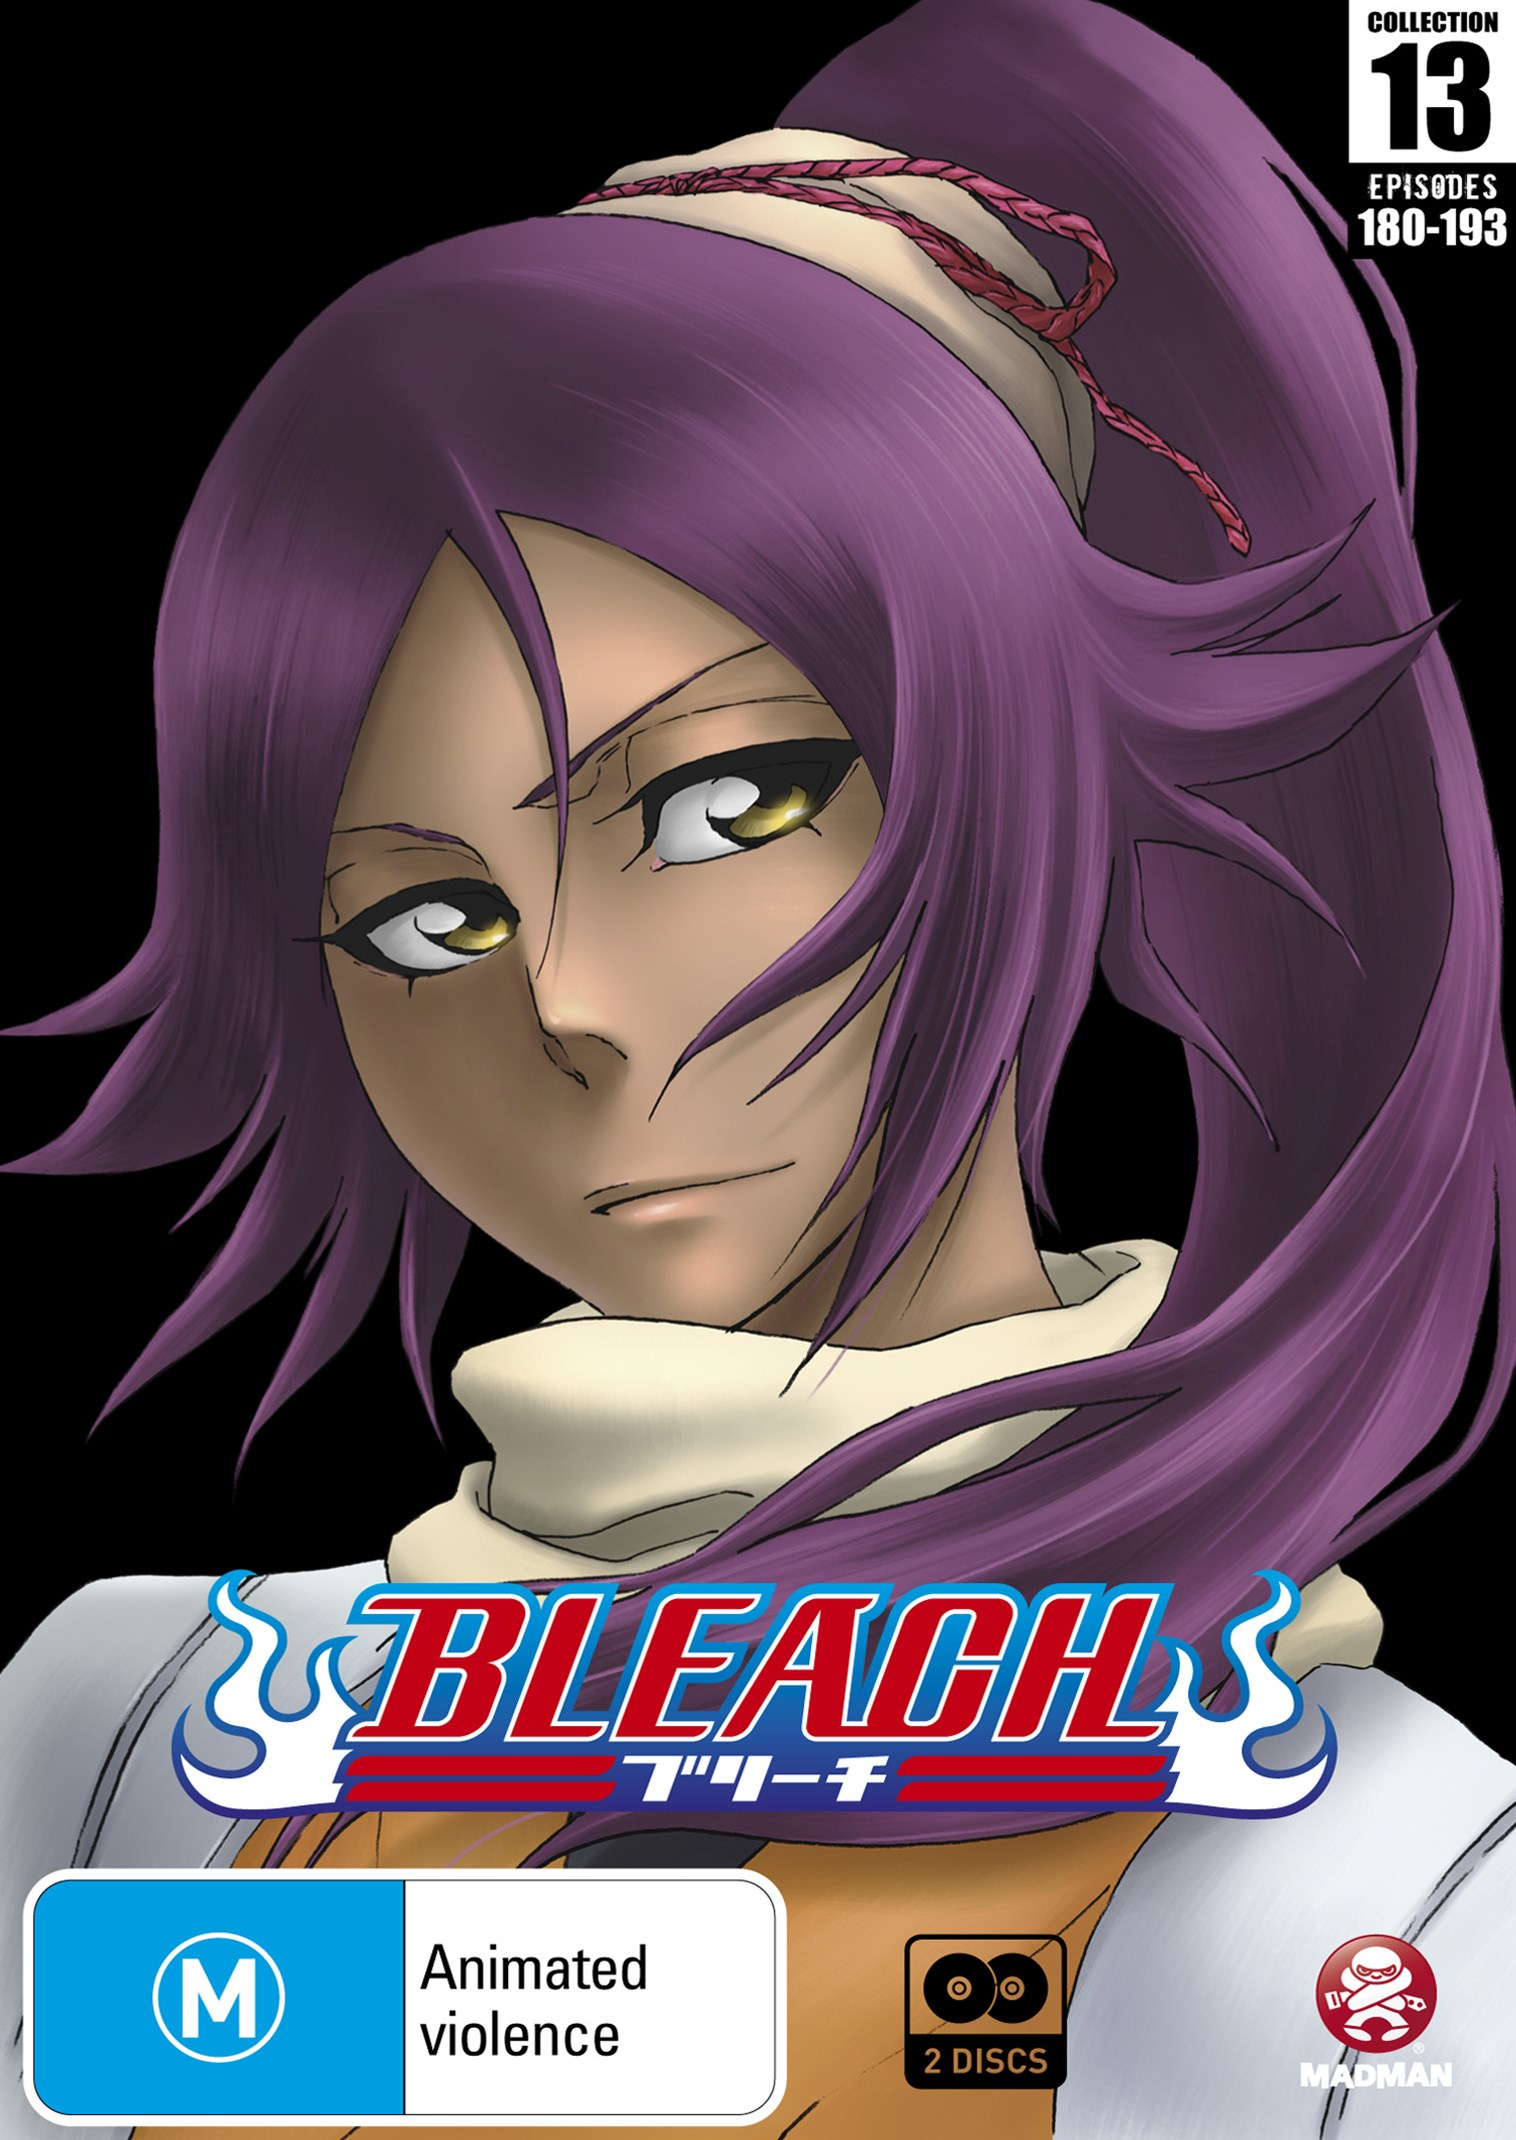 Bleach: Collection 13 (Eps 180-193)